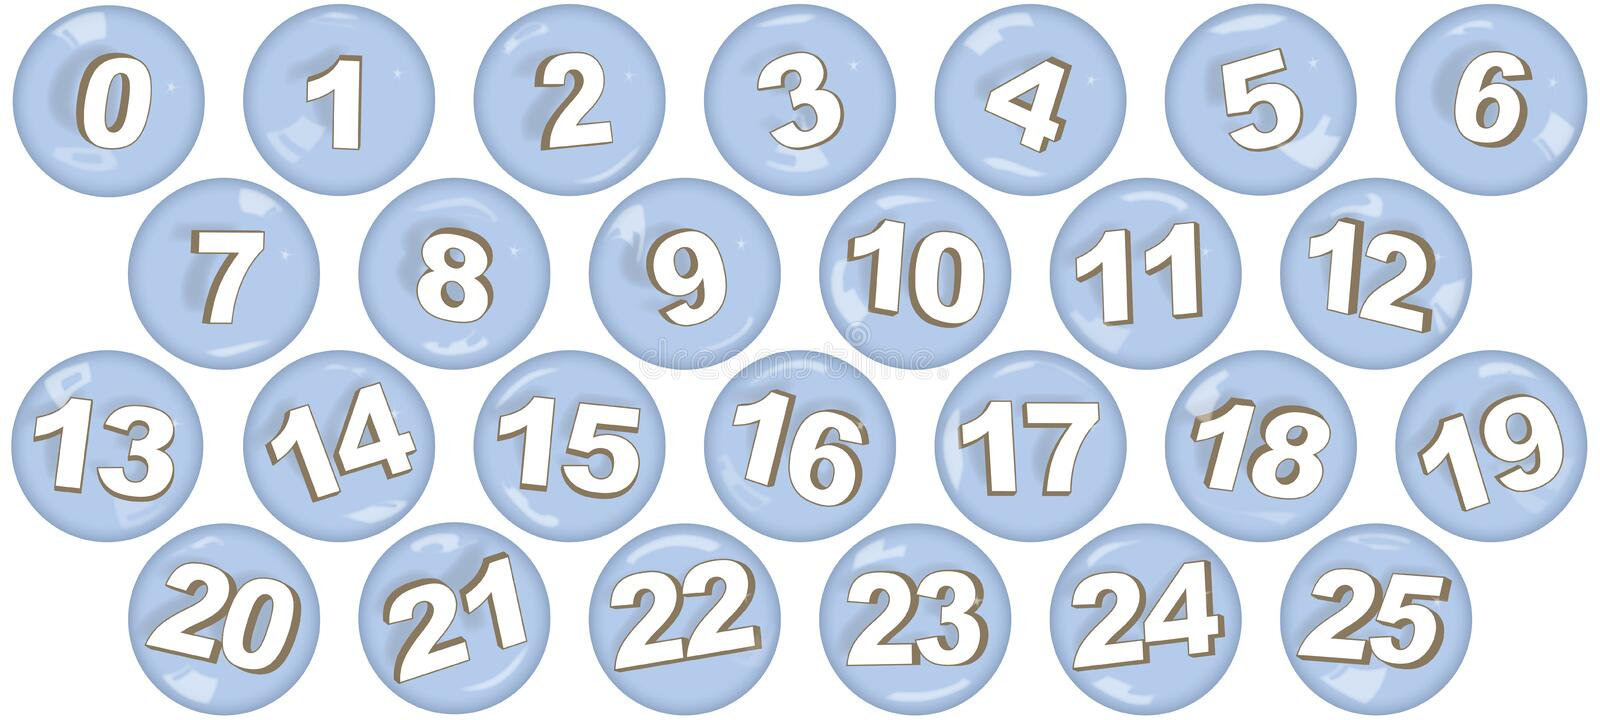 Numbers in bubbles royalty free stock image